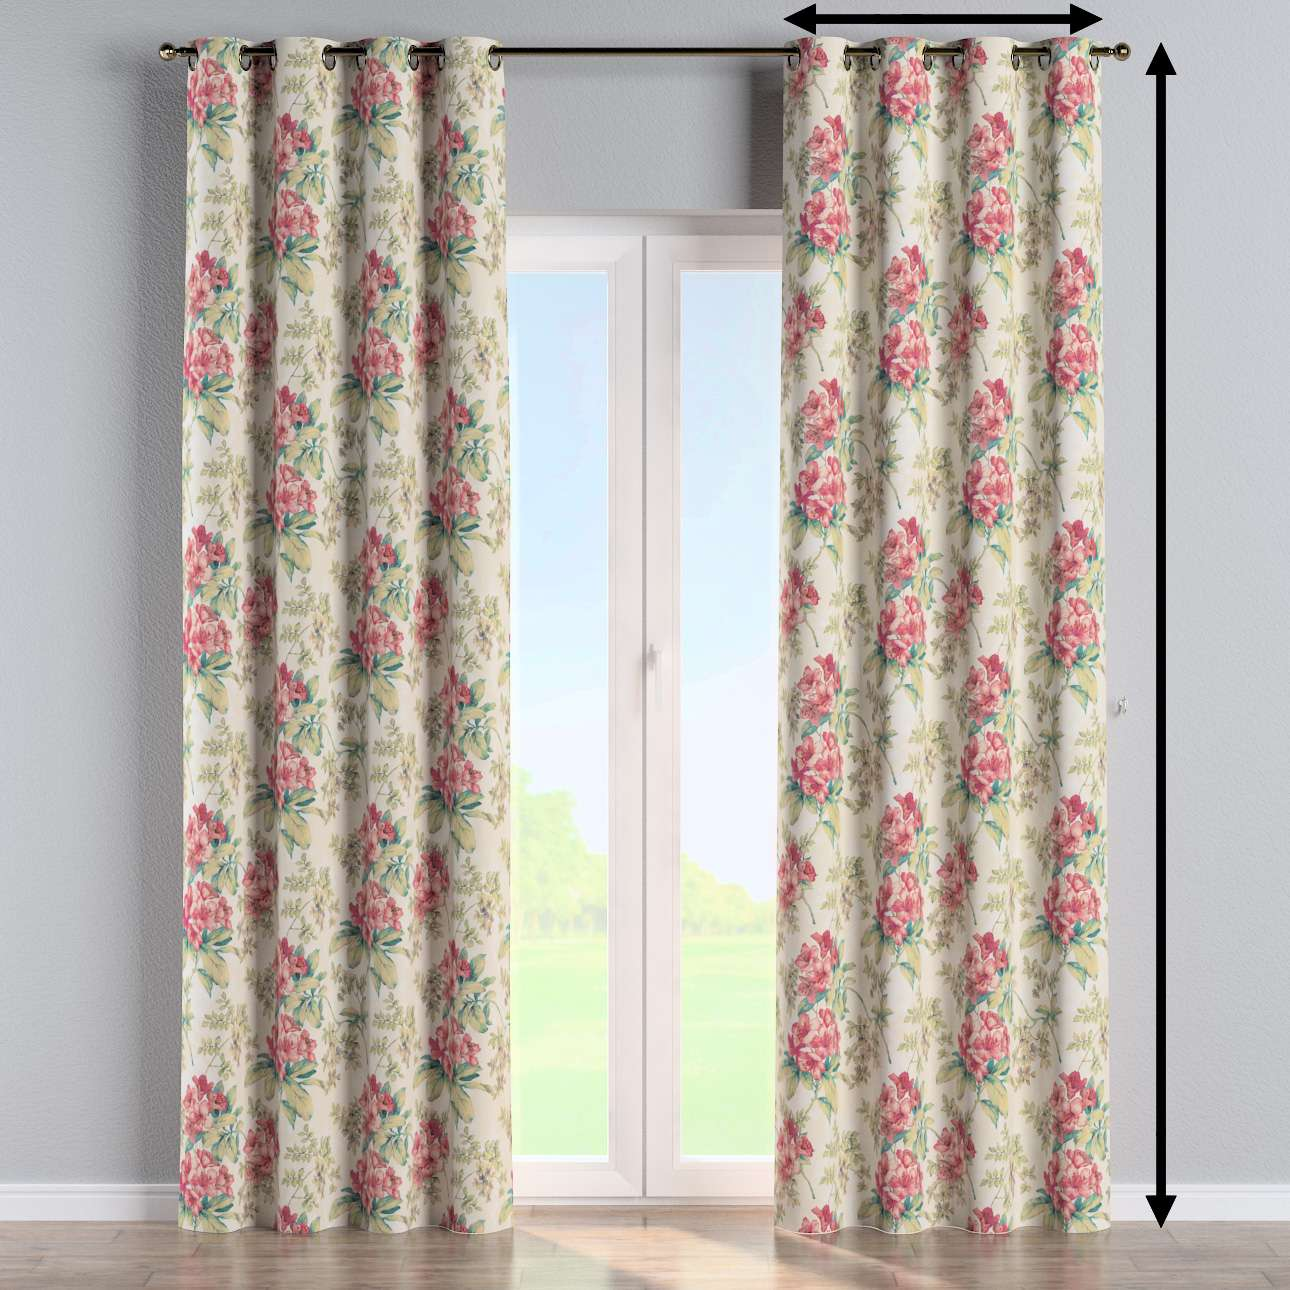 Eyelet curtain in collection Londres, fabric: 143-40